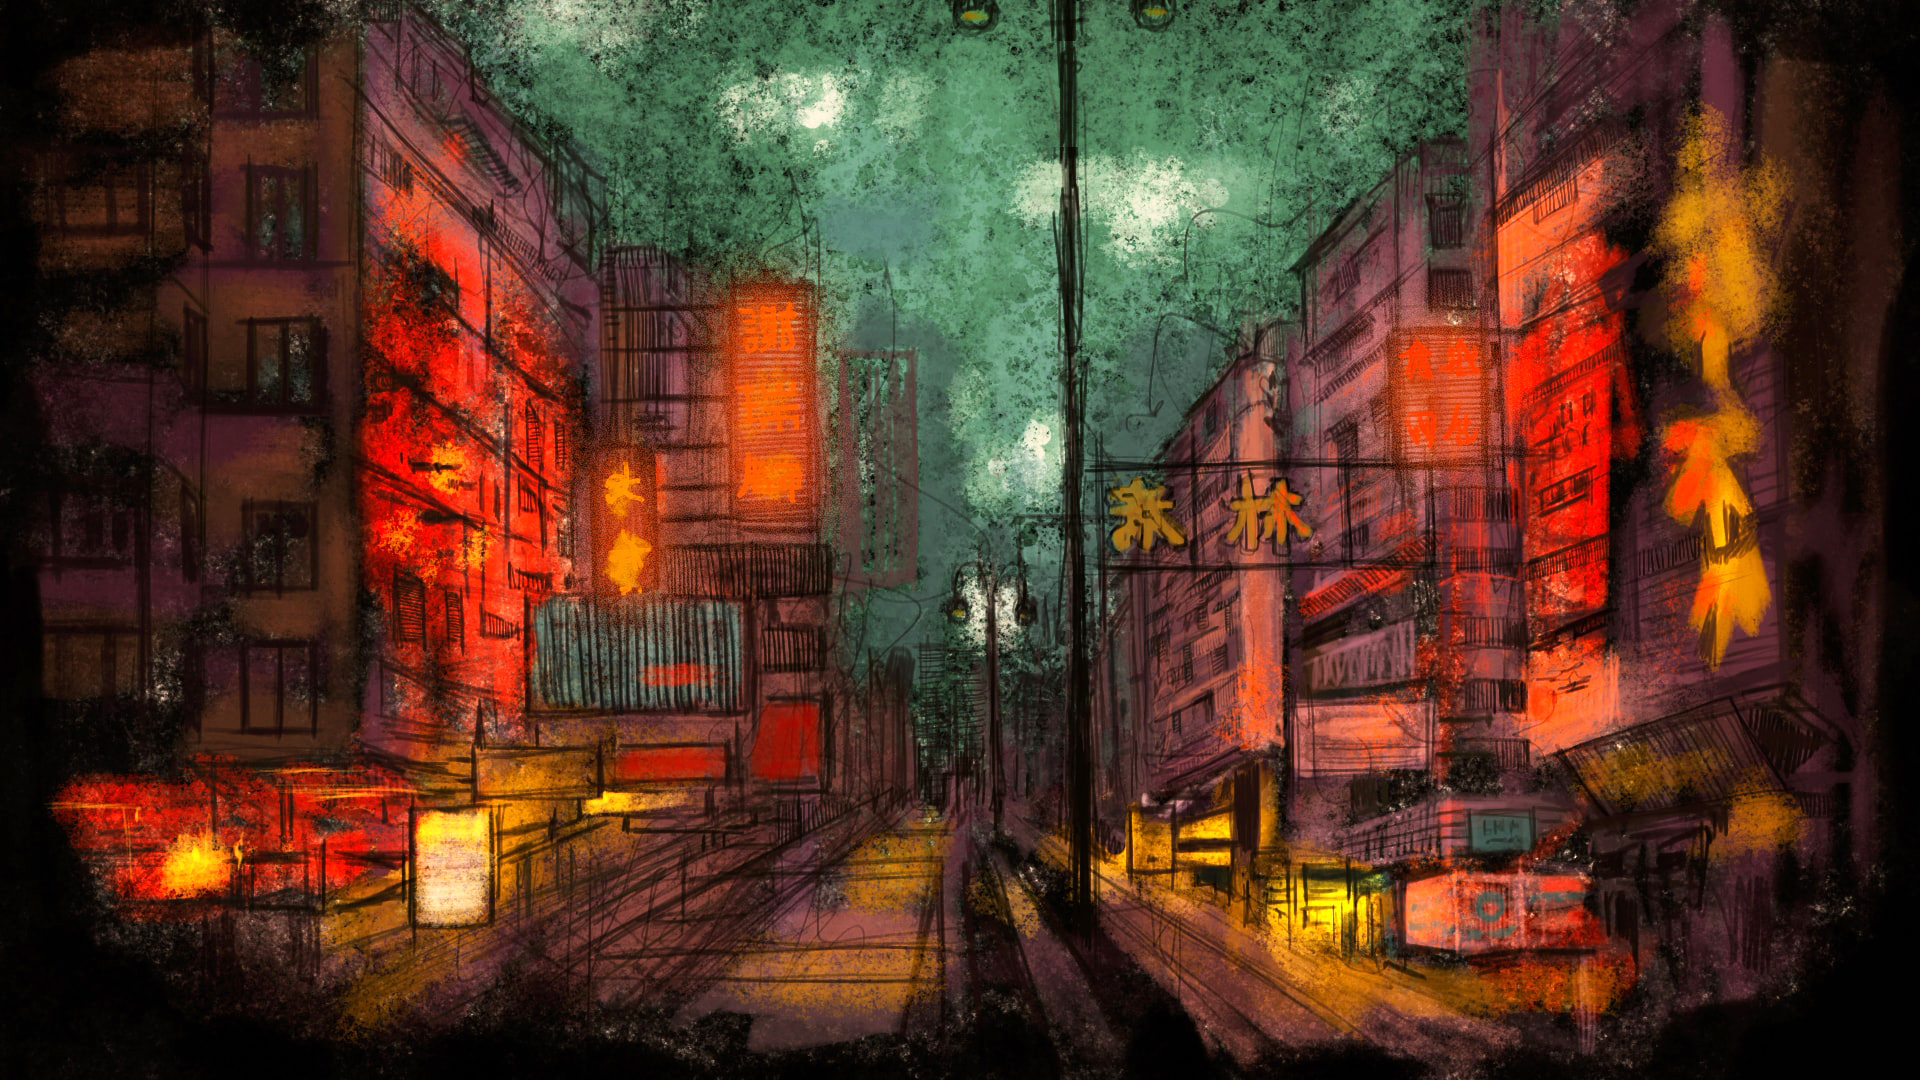 Hong Kong - Digital painting